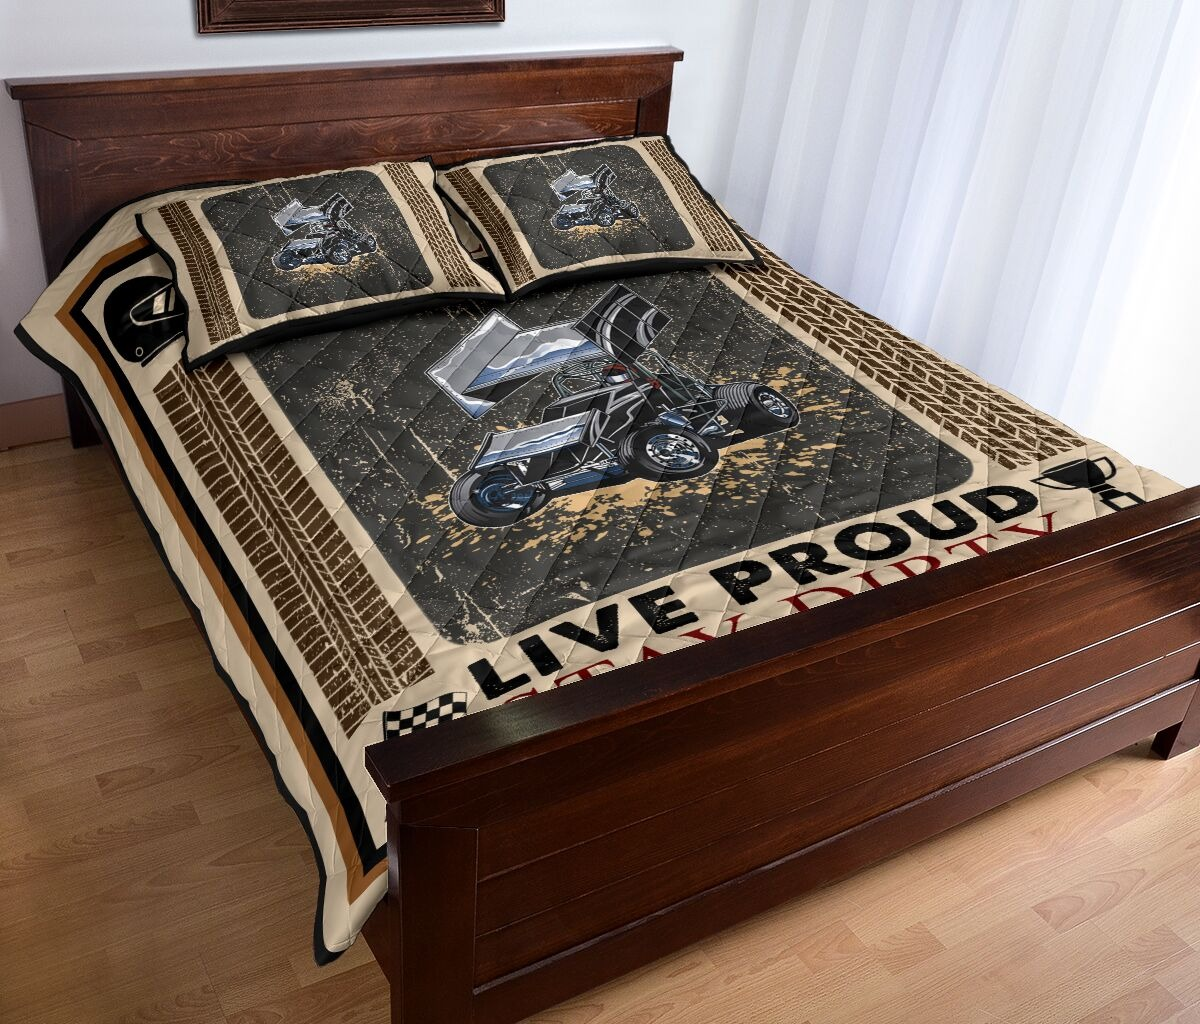 Car racing Live fast live loud live proud stay dirty bedding set2